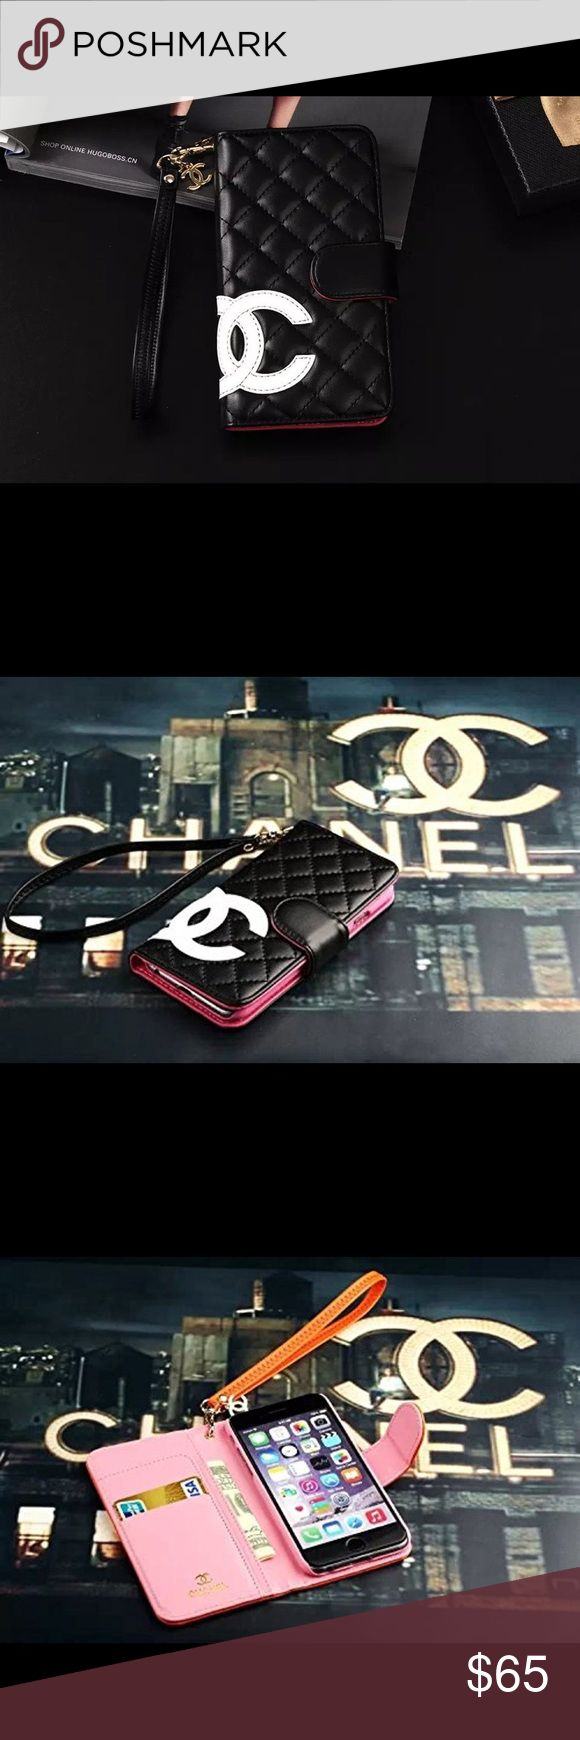 """🆕Apple's FASHION FUN Lux Line/iPhone Cases 🆕 From Apple Style Line,iPhone 6 Plus/6s/6s+ Wallet/iPhone Wrislets/Double C design Wallet w Wrislet PLUS cellphone case/Not Chanel! This is a Fashion Fun Only! Blk&Wht Case/Fits iPhones 6+/6s/& 6s+/5.5"""" w measuremnt) US Distributor/Ship w manufacturer's retail package)PLS NOTE:*THESE R FASHION FUN iPhone Accessories! Nice QUALITY/LUV MINE/RECEIVED HIGH marks w customer satisfaction! FASHION FUN Design,NIB/REAL LEATHER/w…"""